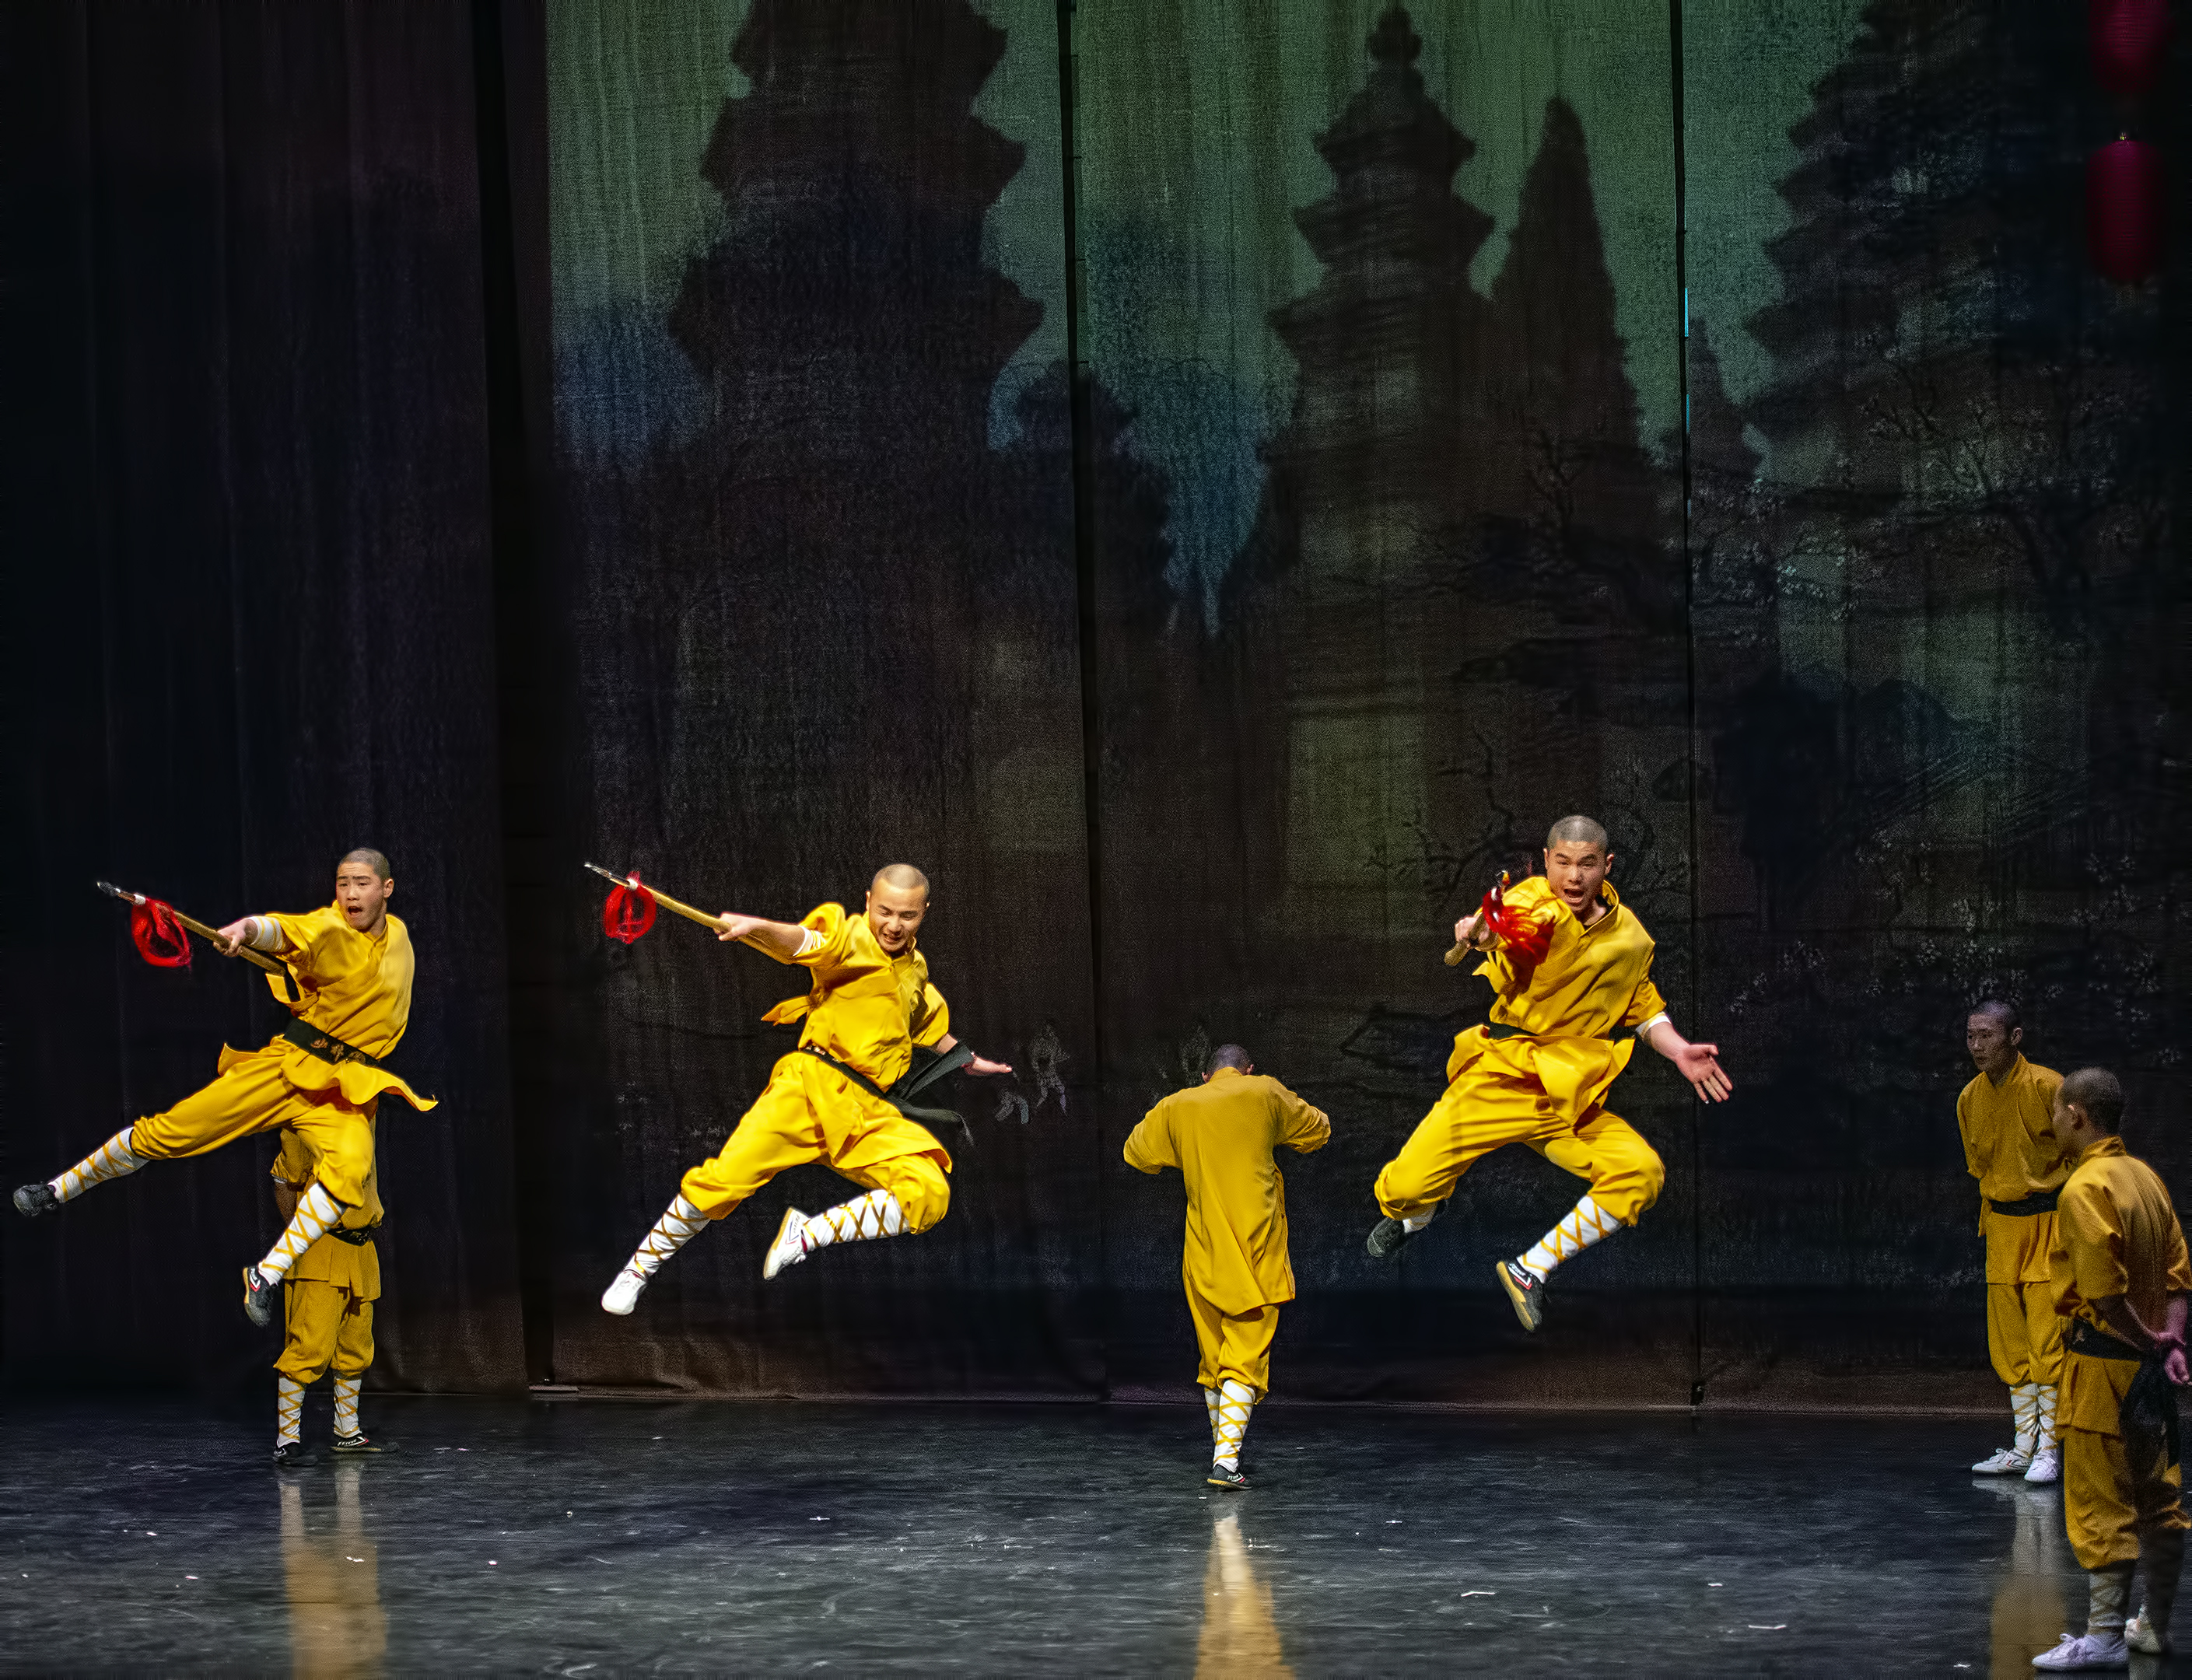 sou shaolin temple monks kung fu